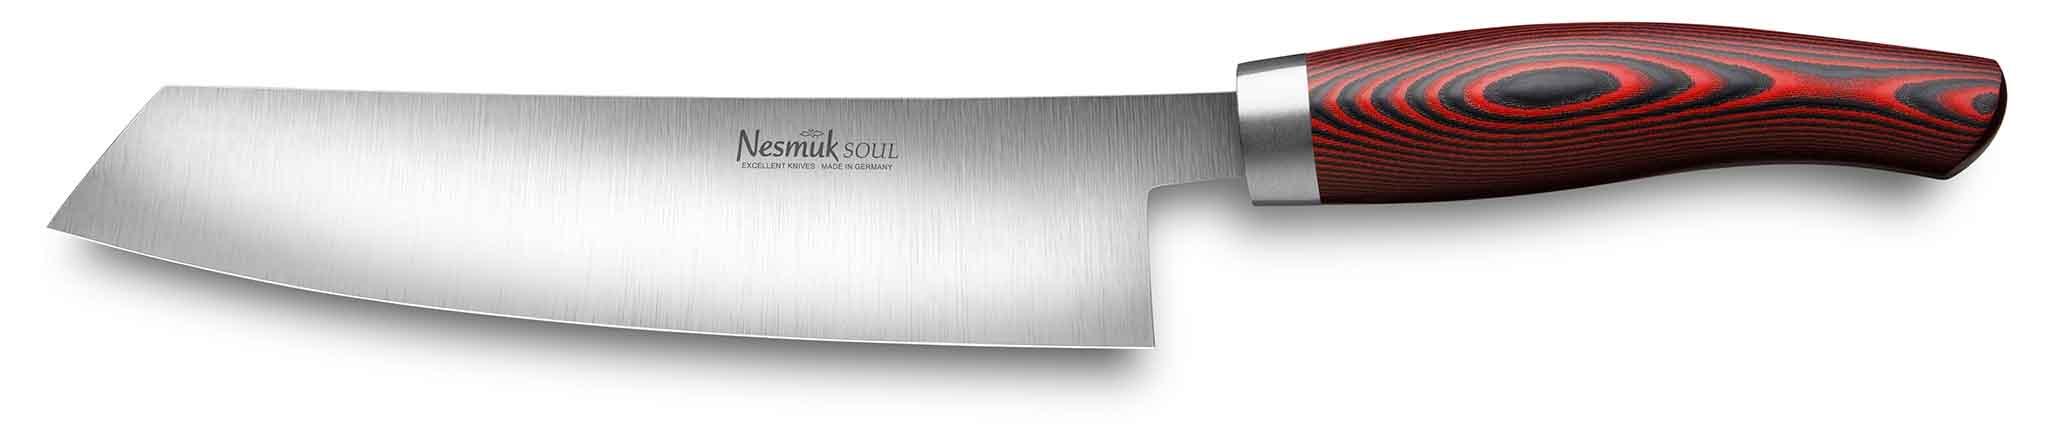 Nesmuk_SOUL_chef_micarta_red